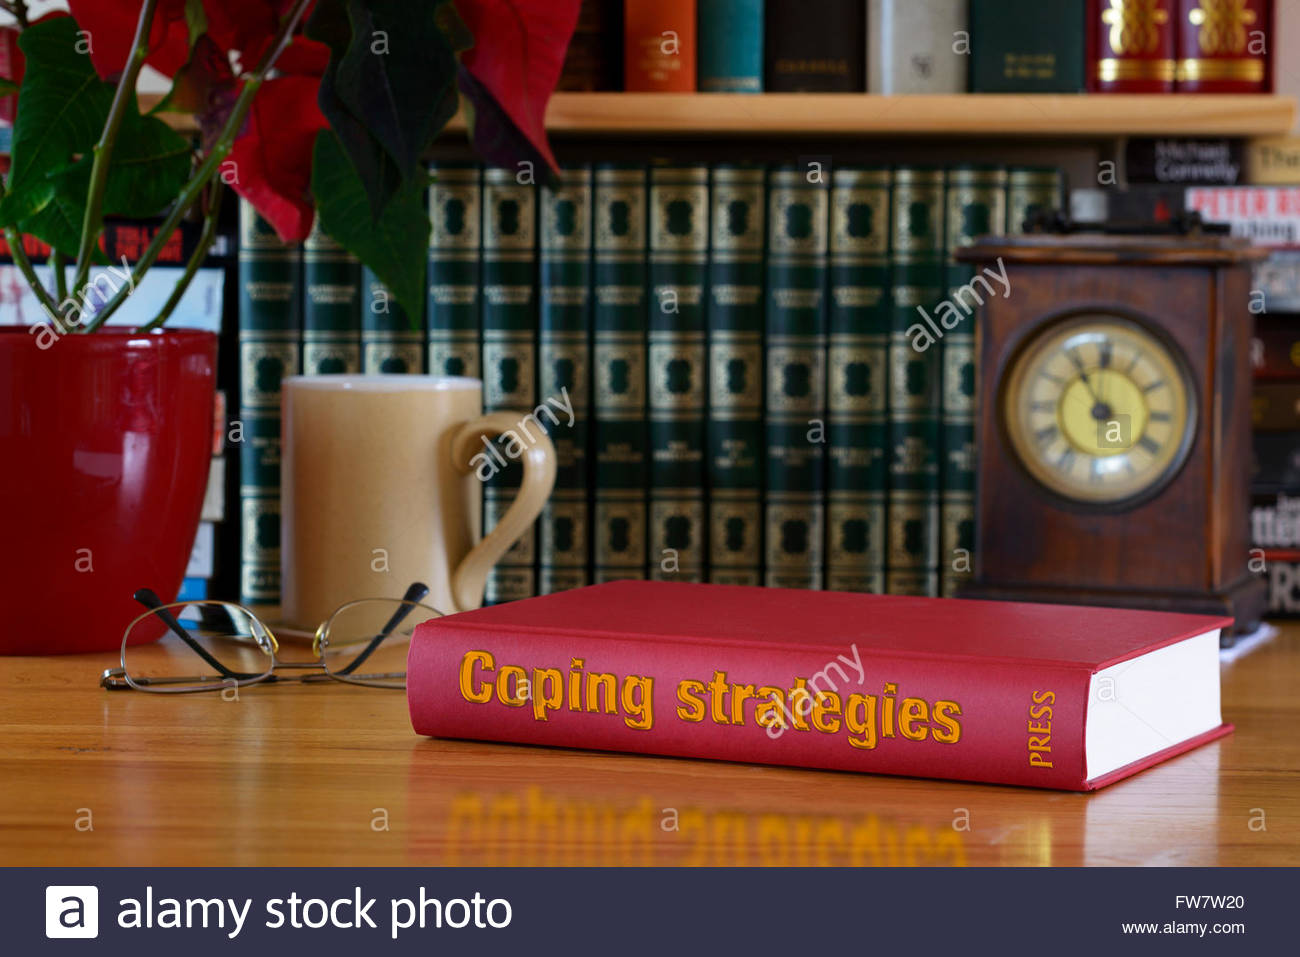 Coping strategies book title, stacked used books, England Stock Photo